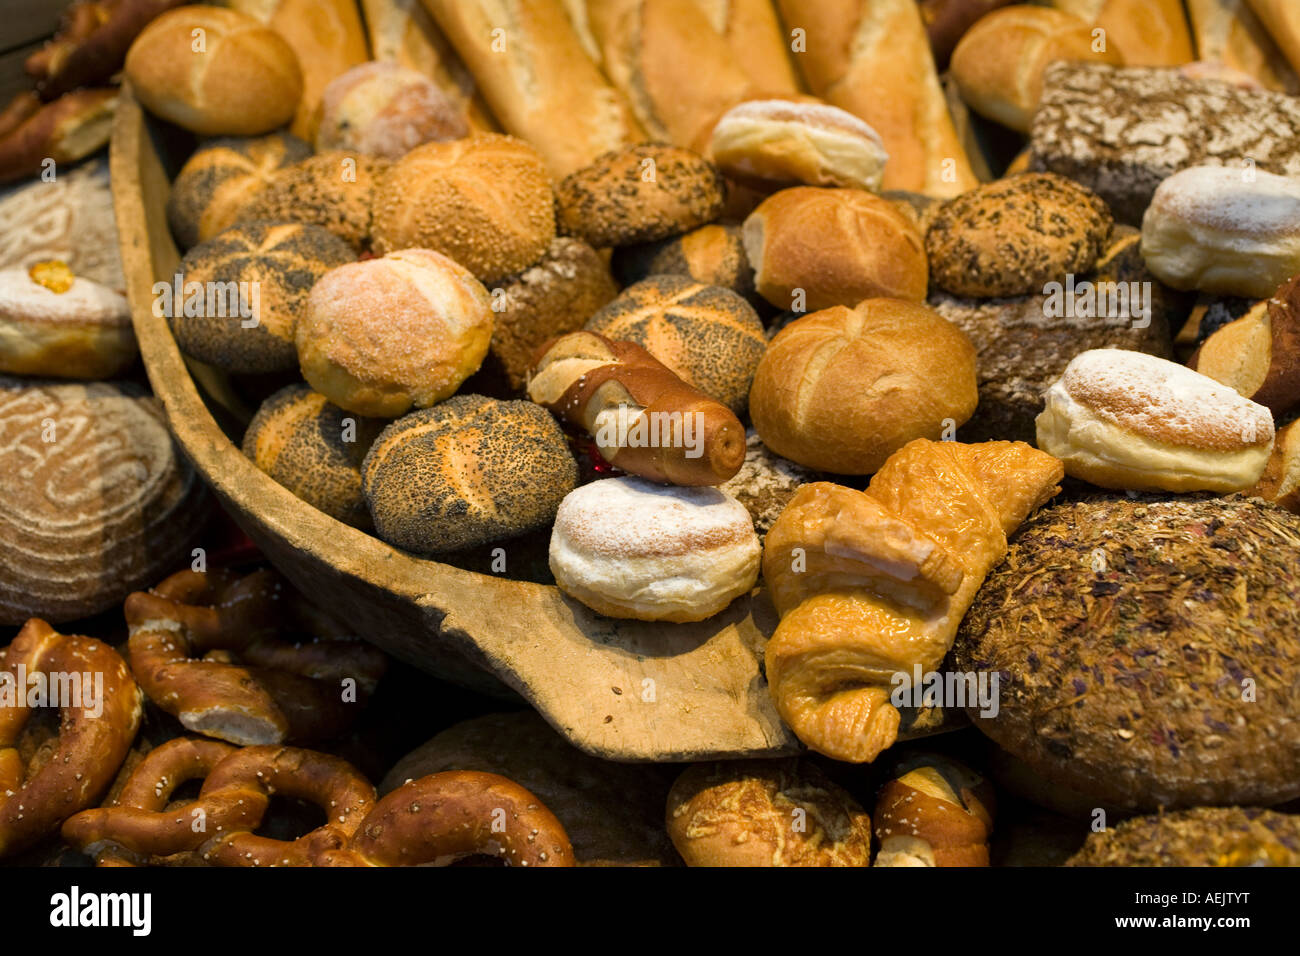 Display of different bread products - Stock Image